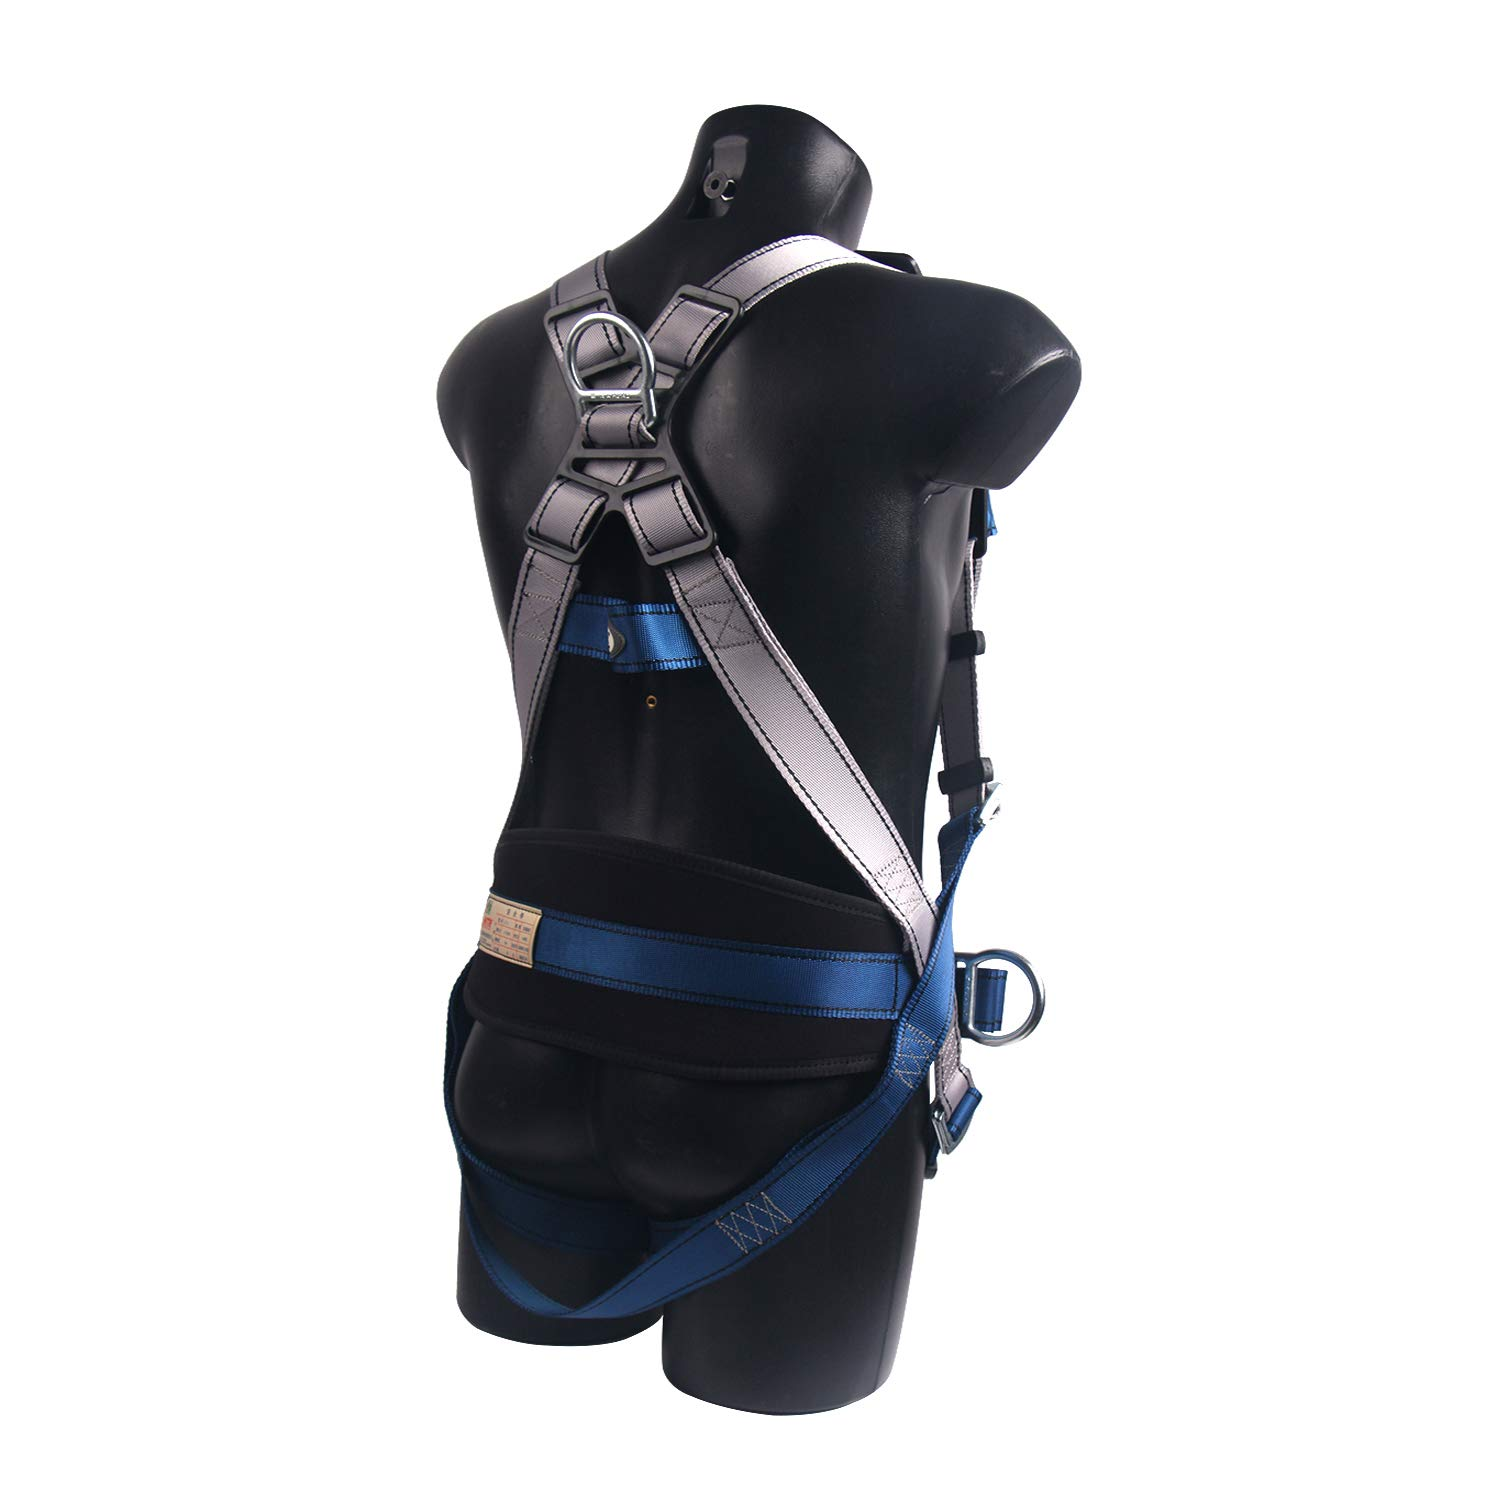 JINGYAT Full Body Safety Harness Fall Protection with 5 D-Ring,Universal Personal Protective Equipment (130-310 pound),Construction Industrial Tower Roofing Tool by JINGYAT (Image #3)